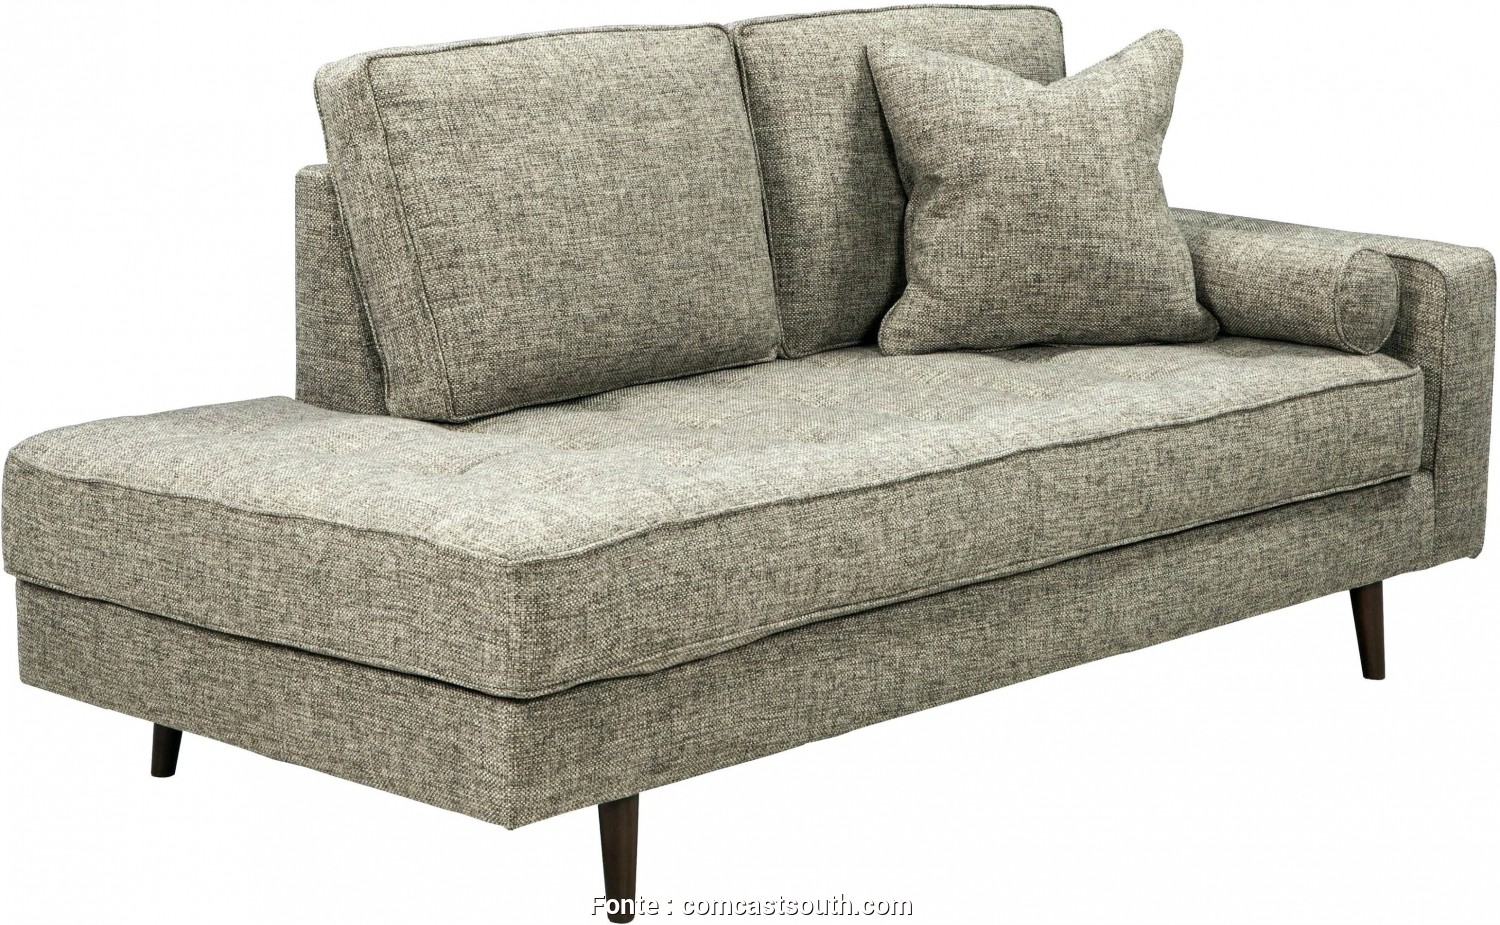 Ikea Beddinge Nicht Mehr Im Sortiment, Incredibile Ikea Sofa Beige Frisch 19 Super Ikea Tidafors Sofa Arts Bilder Of 33, Ikea Sofa